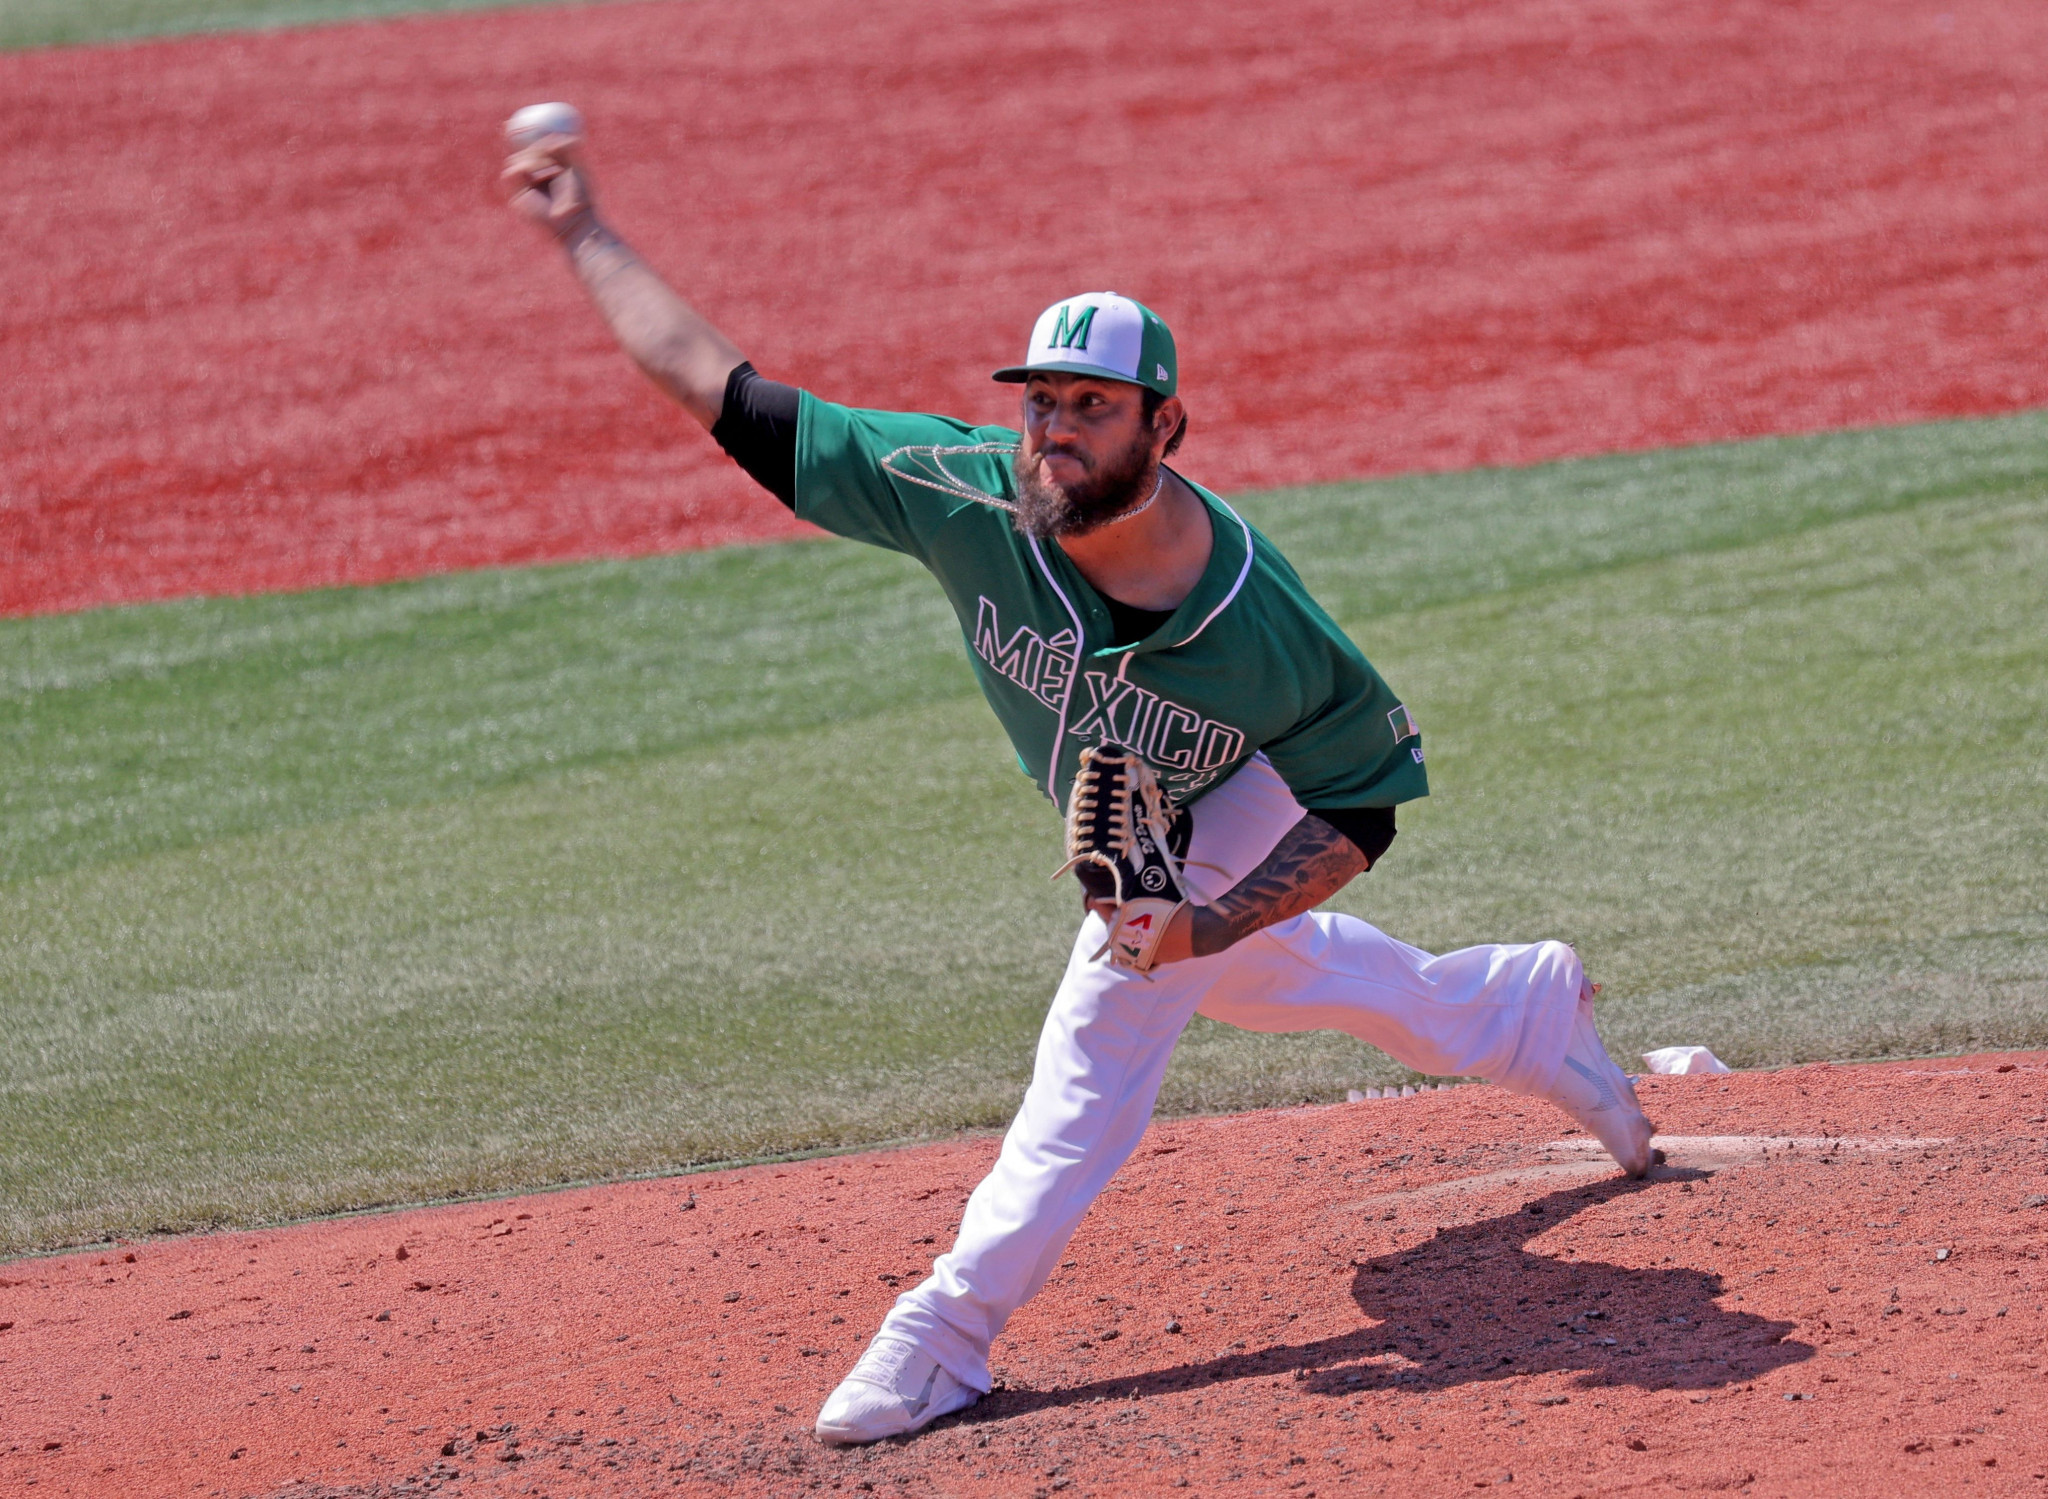 Mexico leapfrogs Colombia to qualify for final of Under-23 Baseball World Cup